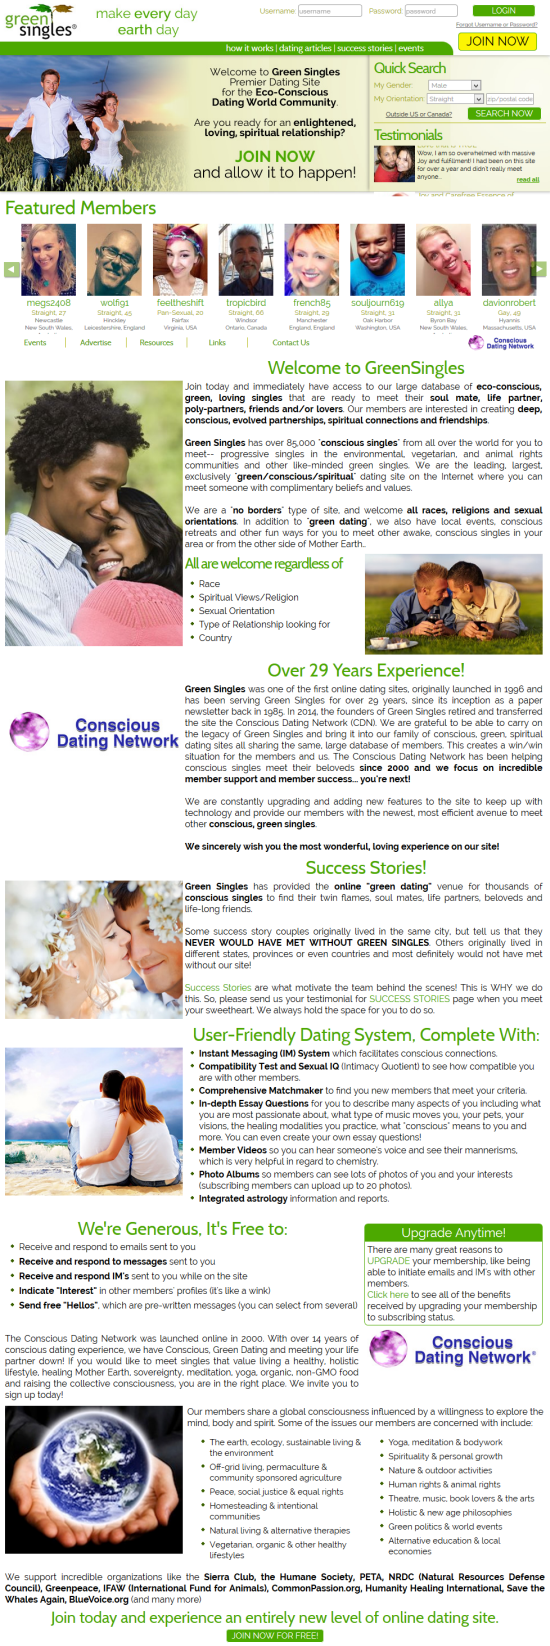 west green singles dating site Greensingles is for eco-conscious and green loving singles greensingles is a dating and relationship site for socially and ecologically conscious singles.